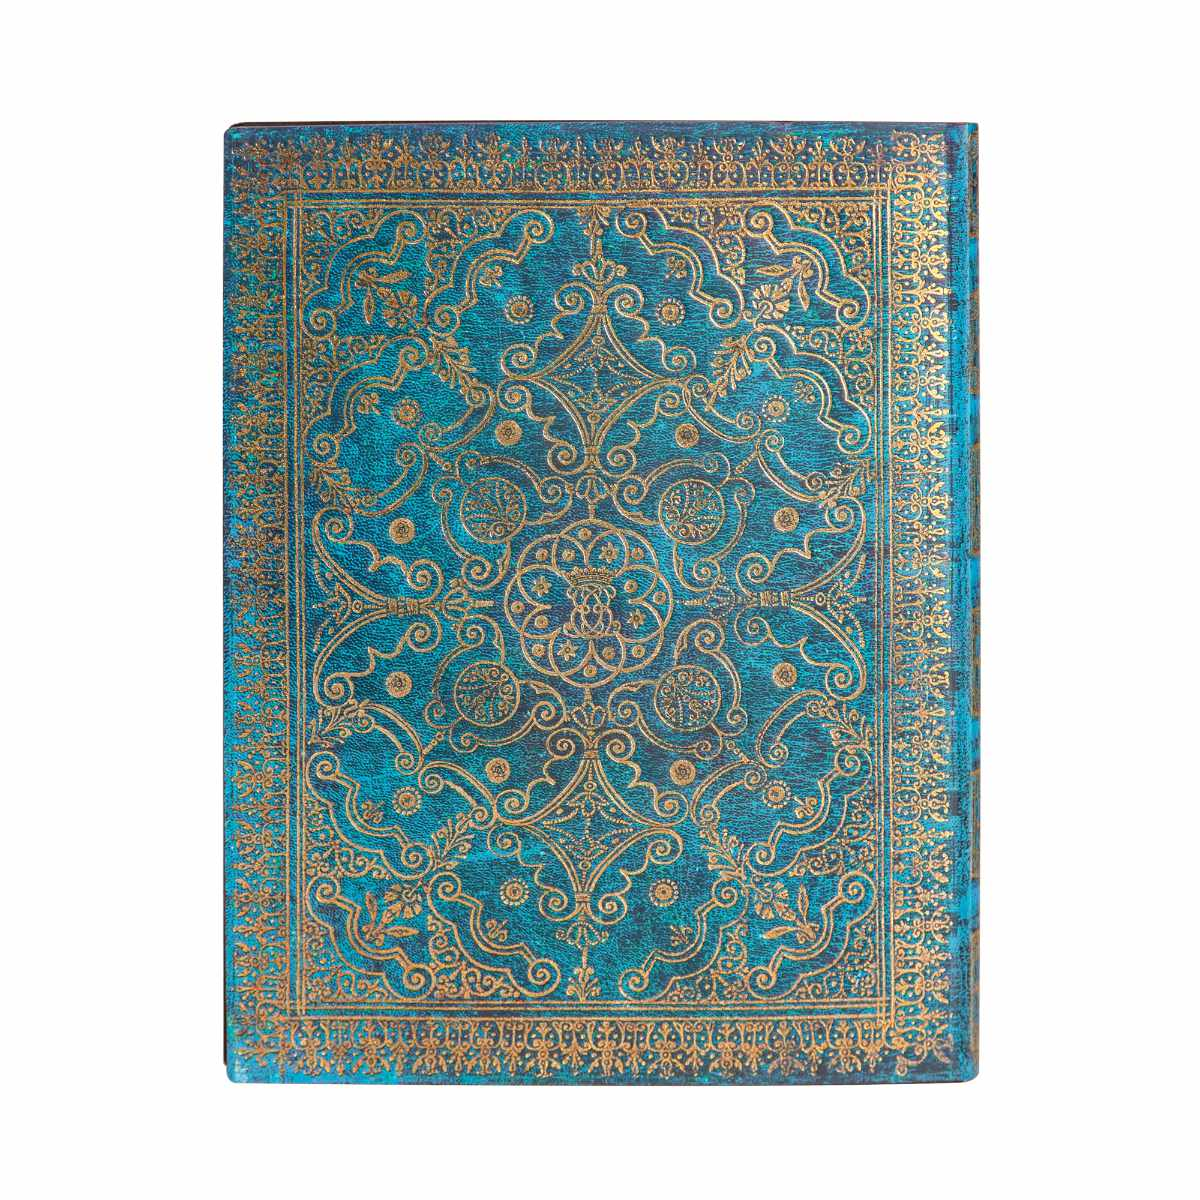 Paperblanks Flexis Equinoxe Azure Ultra 7x9 inch 240 Pages